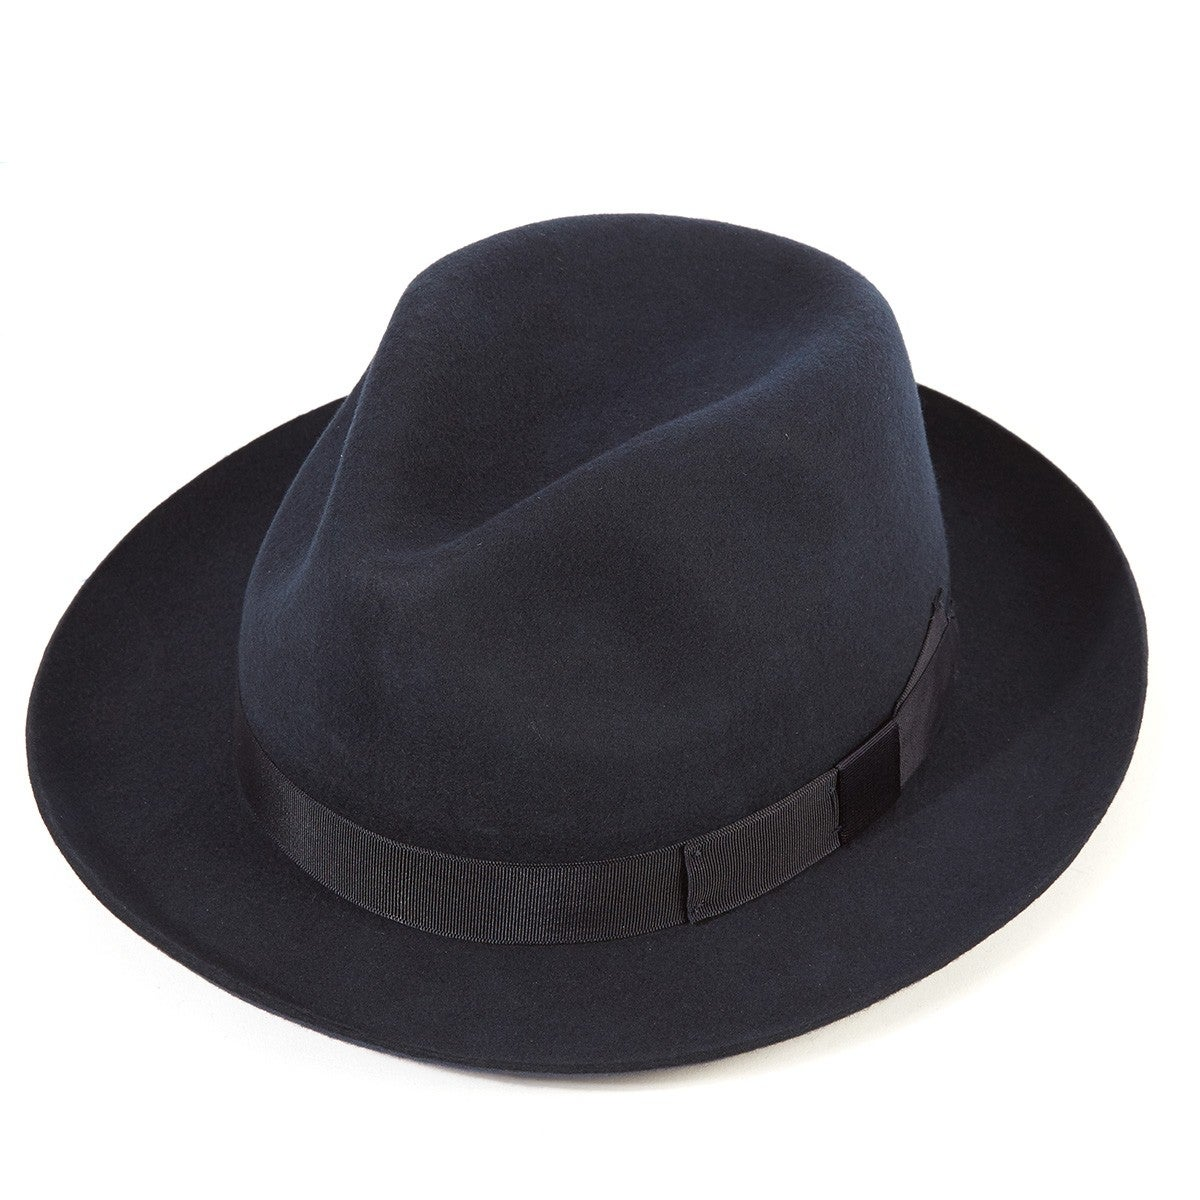 e0651c5e7399ca Christys Hats Chepstow Wool Felt Trilby Men's Hat - Navy | Country ...